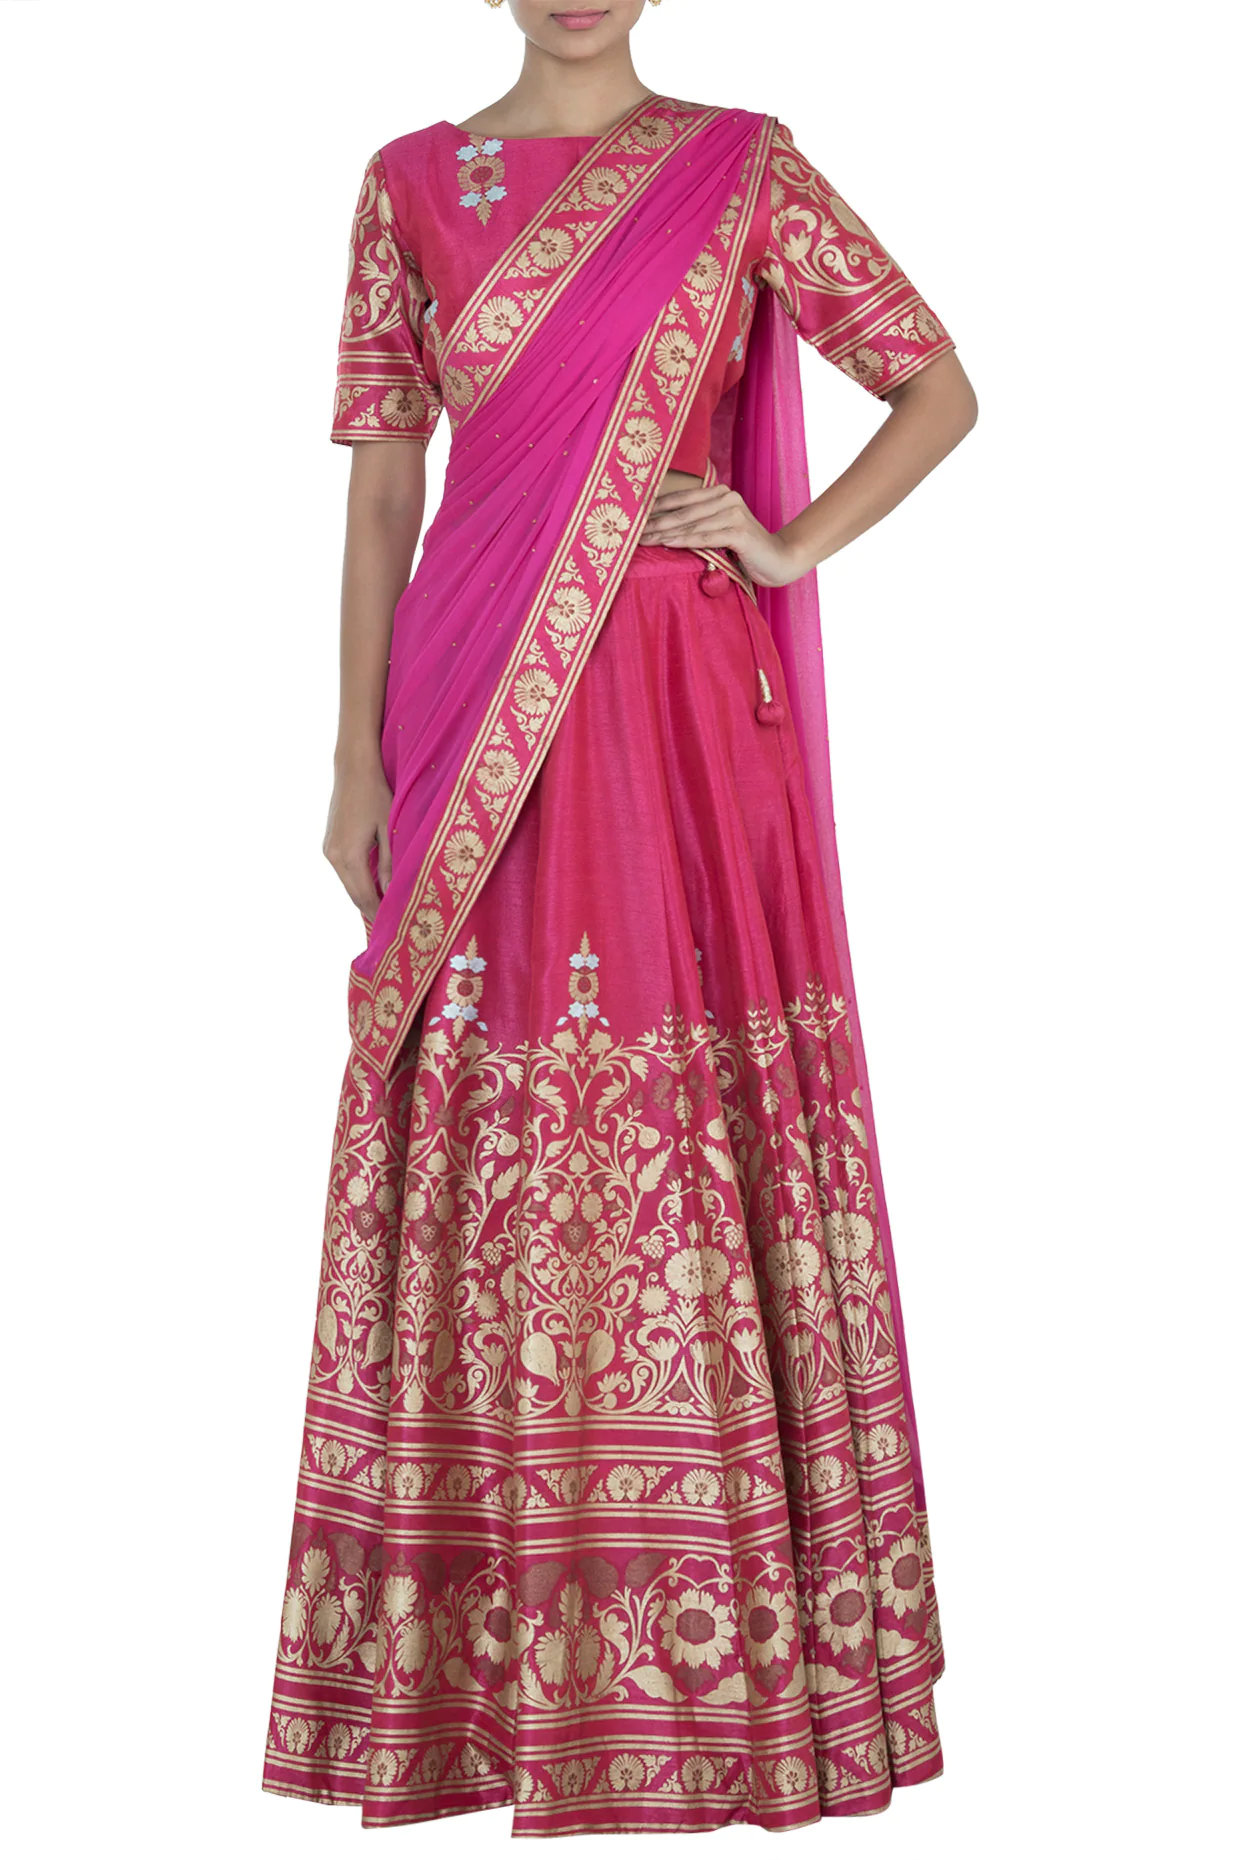 Pink Printed Lehenga Set by Surendri-Handpicked for You